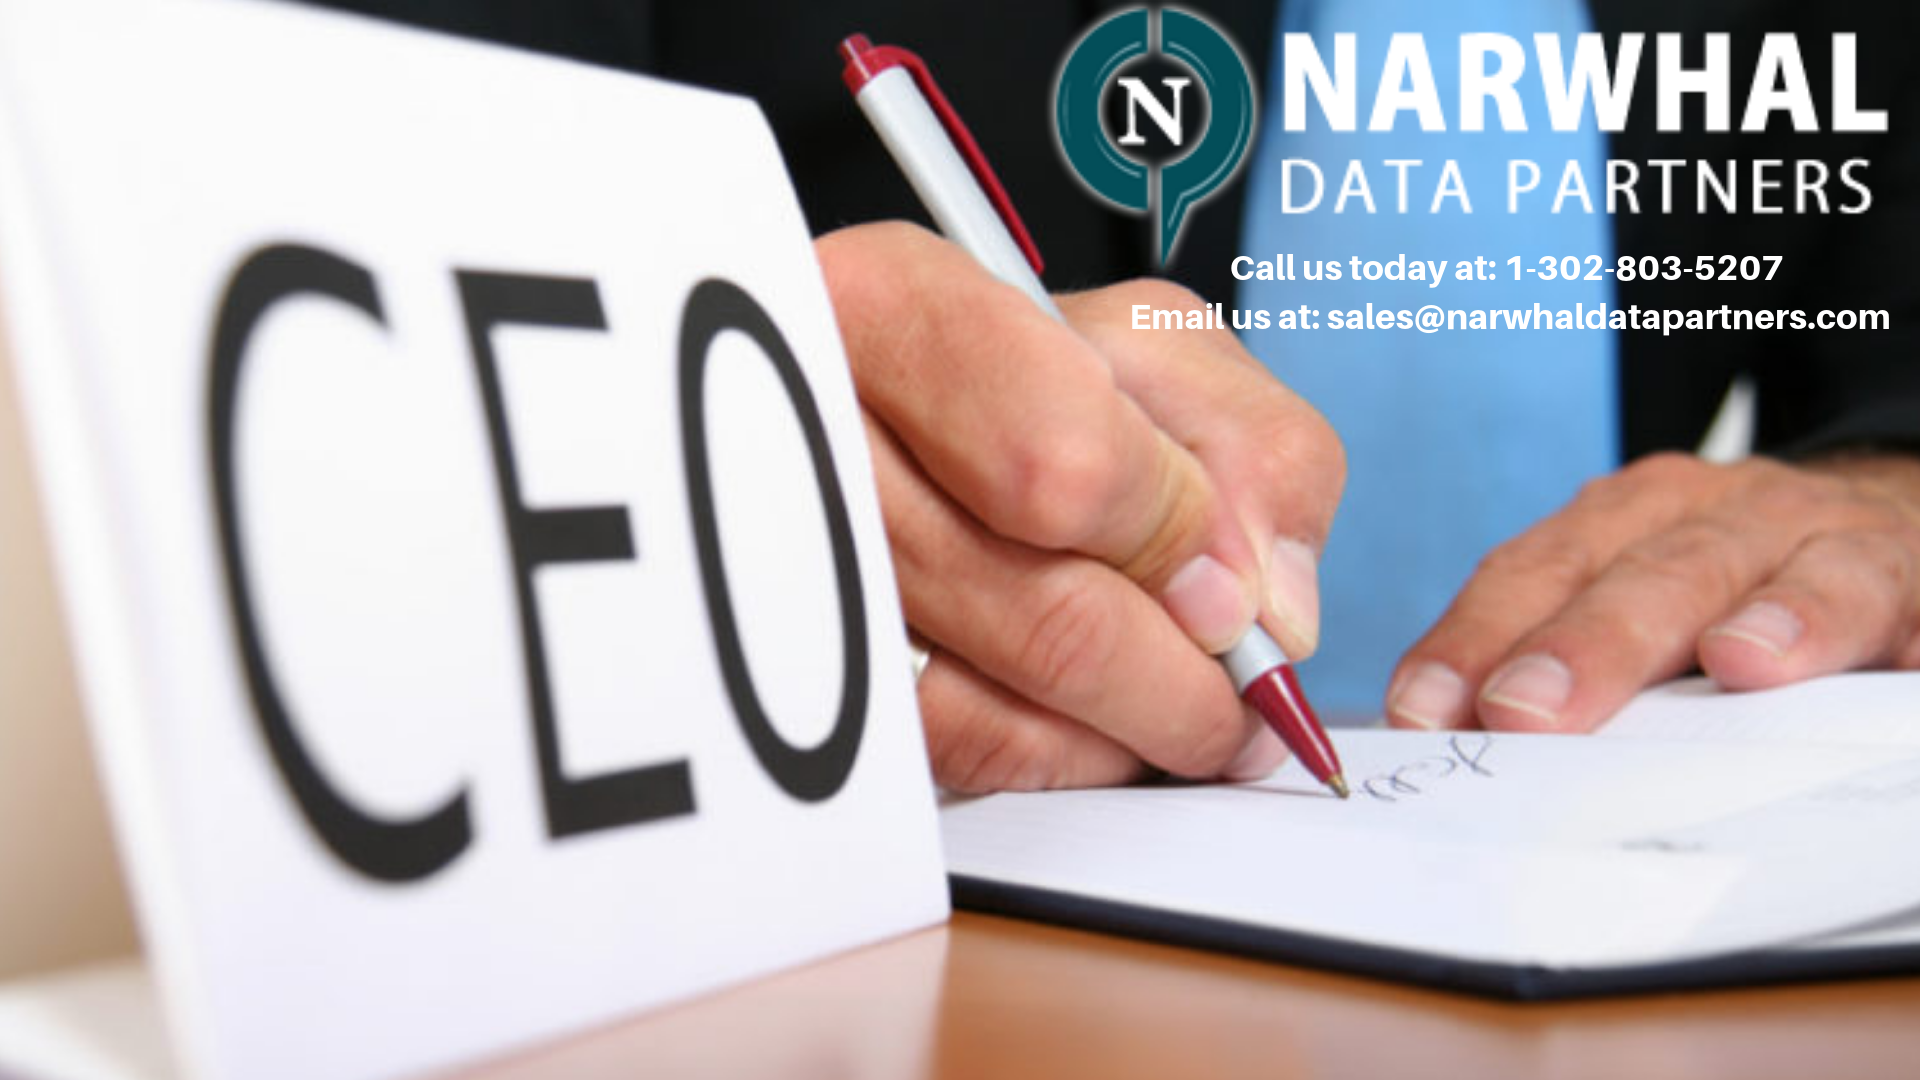 http://narwhaldatapartners.com/chief-executive-officer-email-list.html